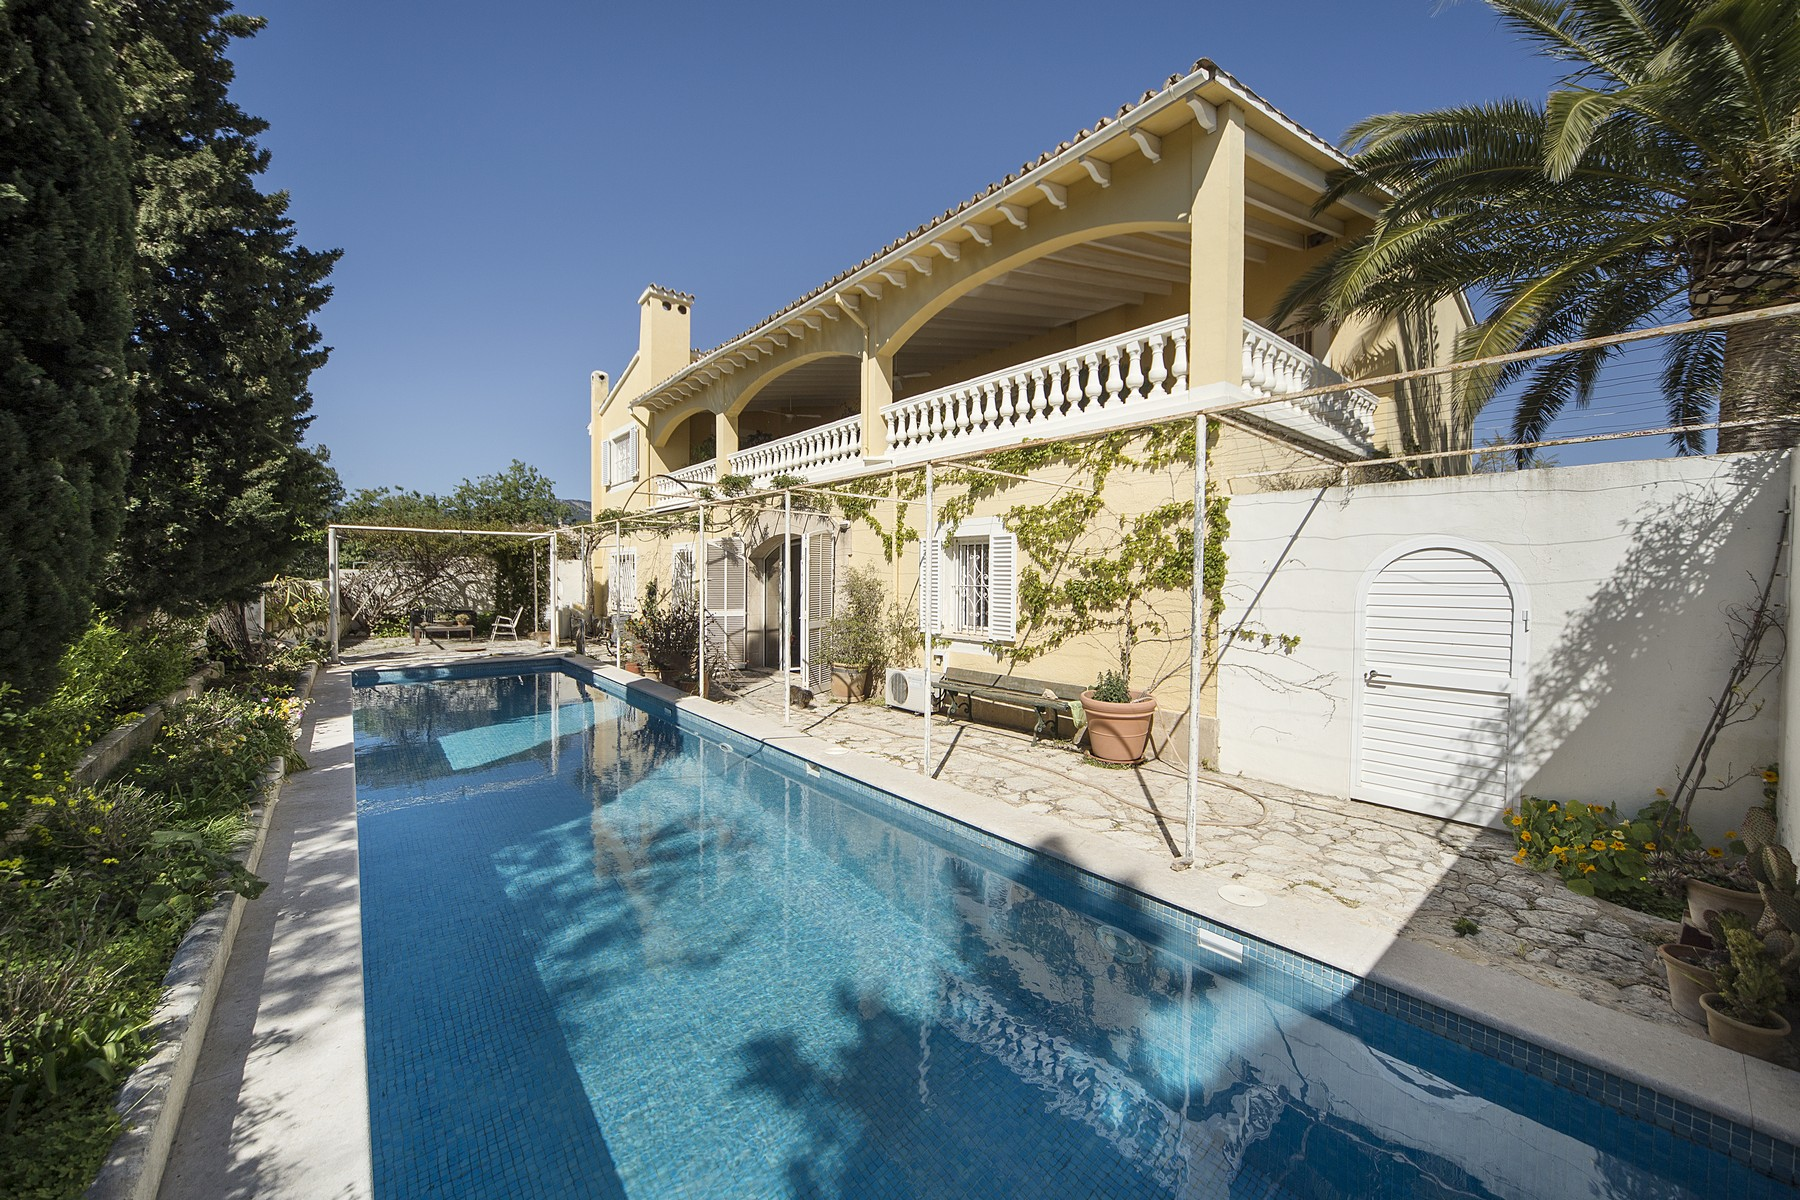 Single Family Home for Sale at Country home very close to Palma Establiments, Mallorca, Spain